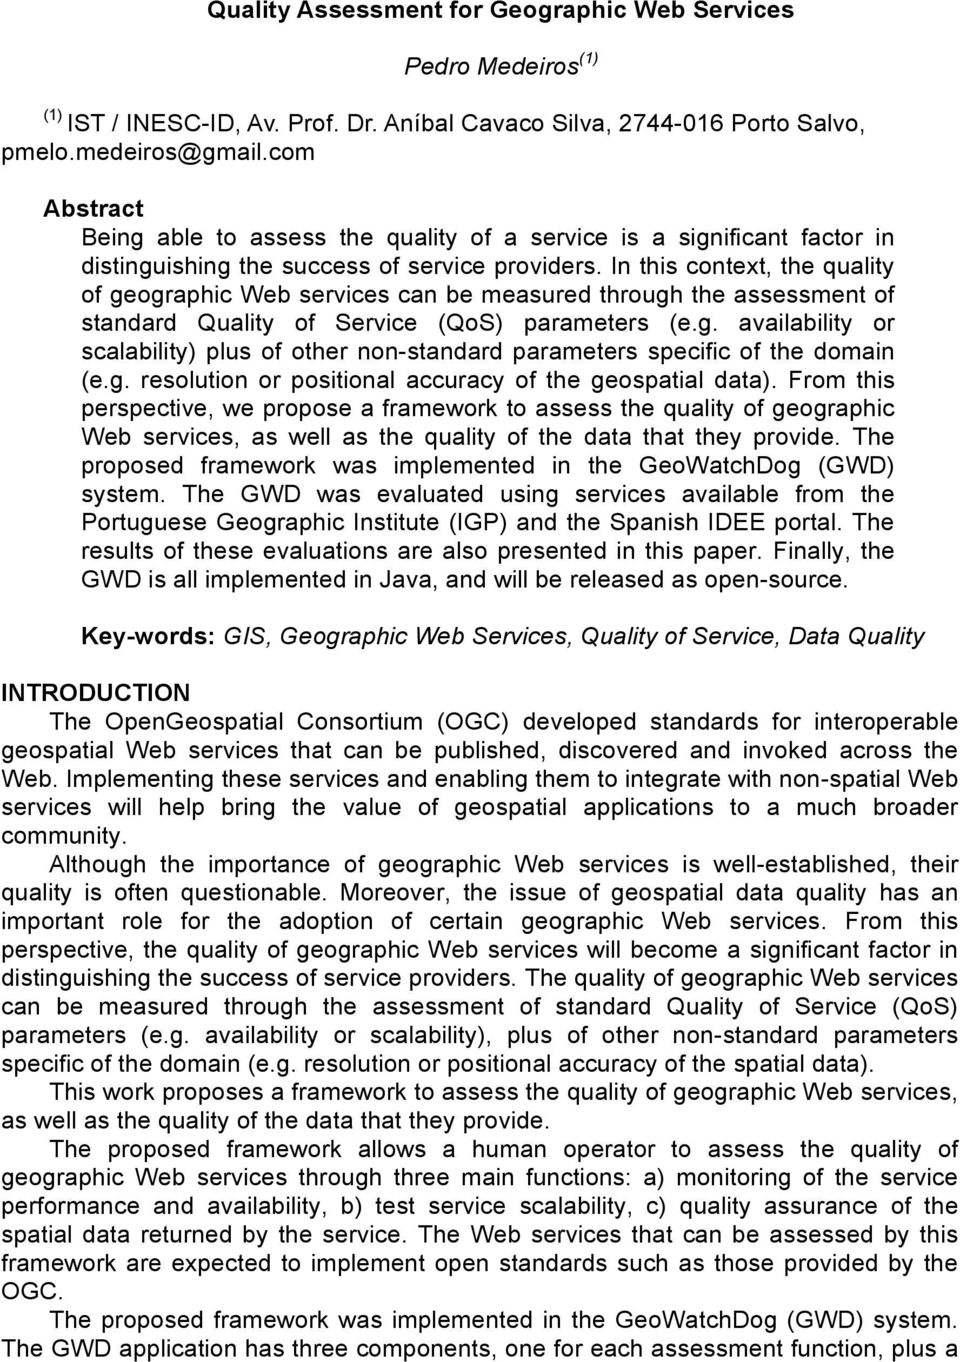 In this context, the quality of geographic Web services can be measured through the assessment of standard Quality of Service (QoS) parameters (e.g. availability or scalability) plus of other non-standard parameters specific of the domain (e.